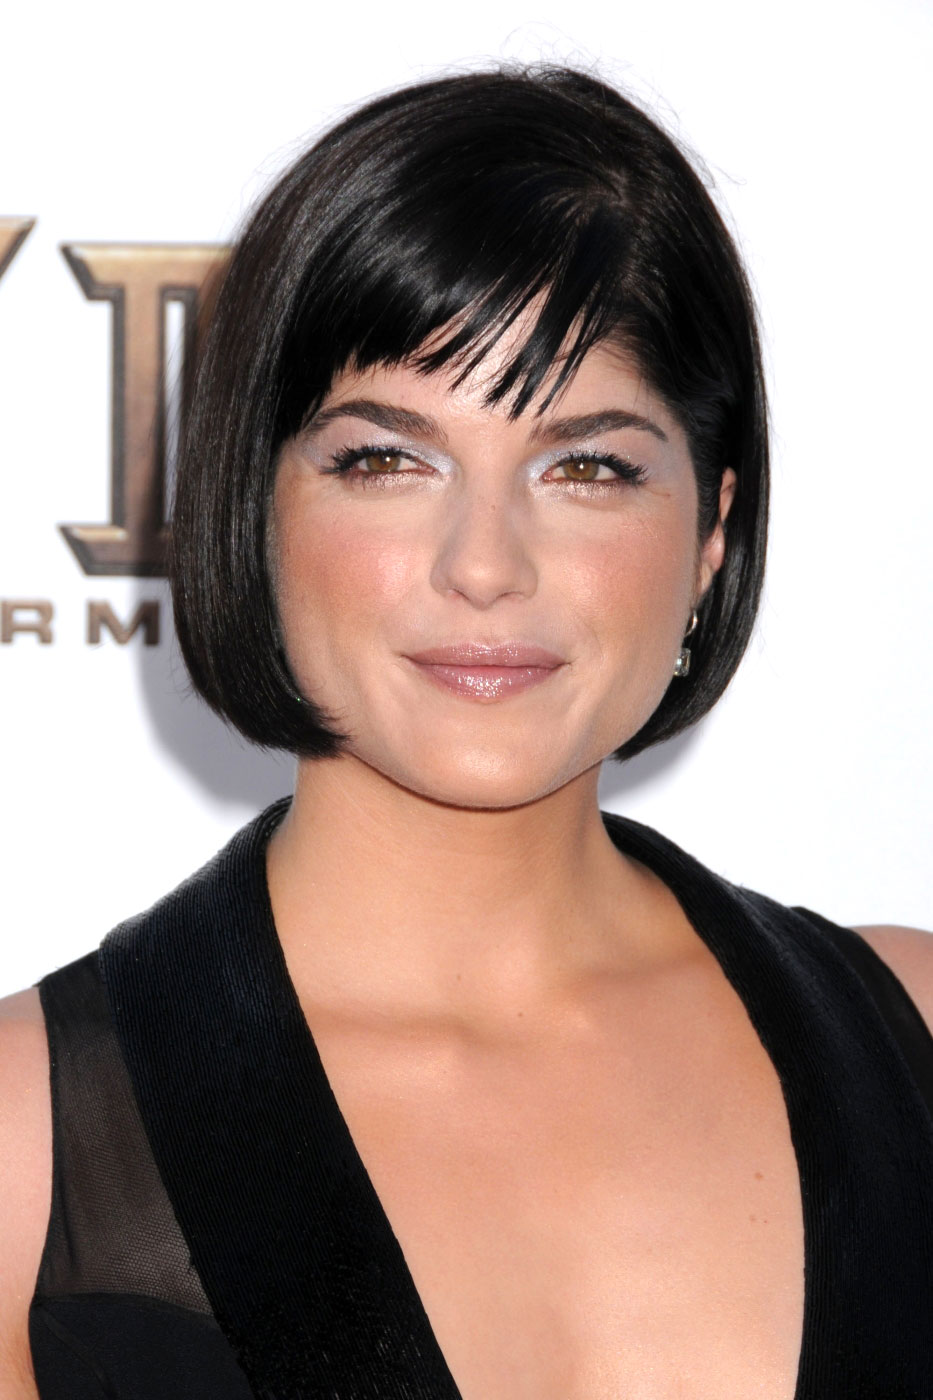 Selma Blair - Wallpaper Actress